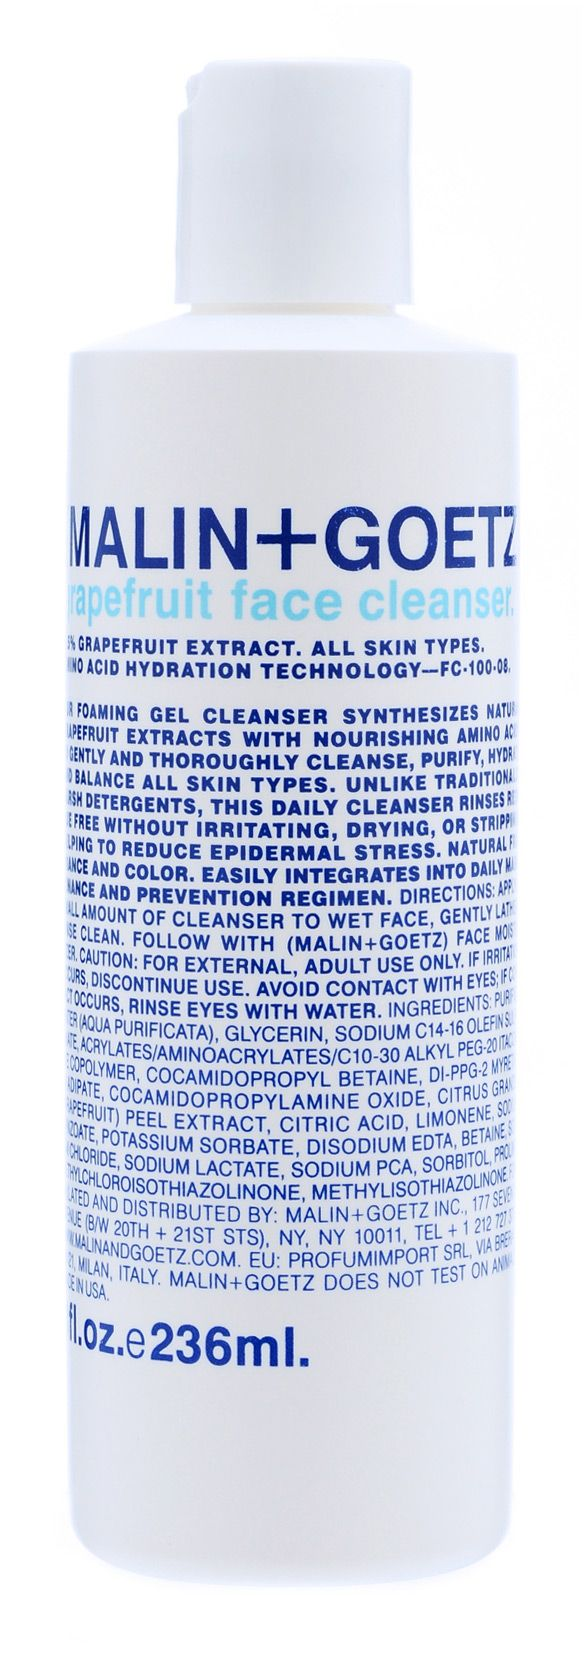 great all natural face cleanser for sensitive rosacea-prone skin... (grapefruit face cleanser by malin+goetz)